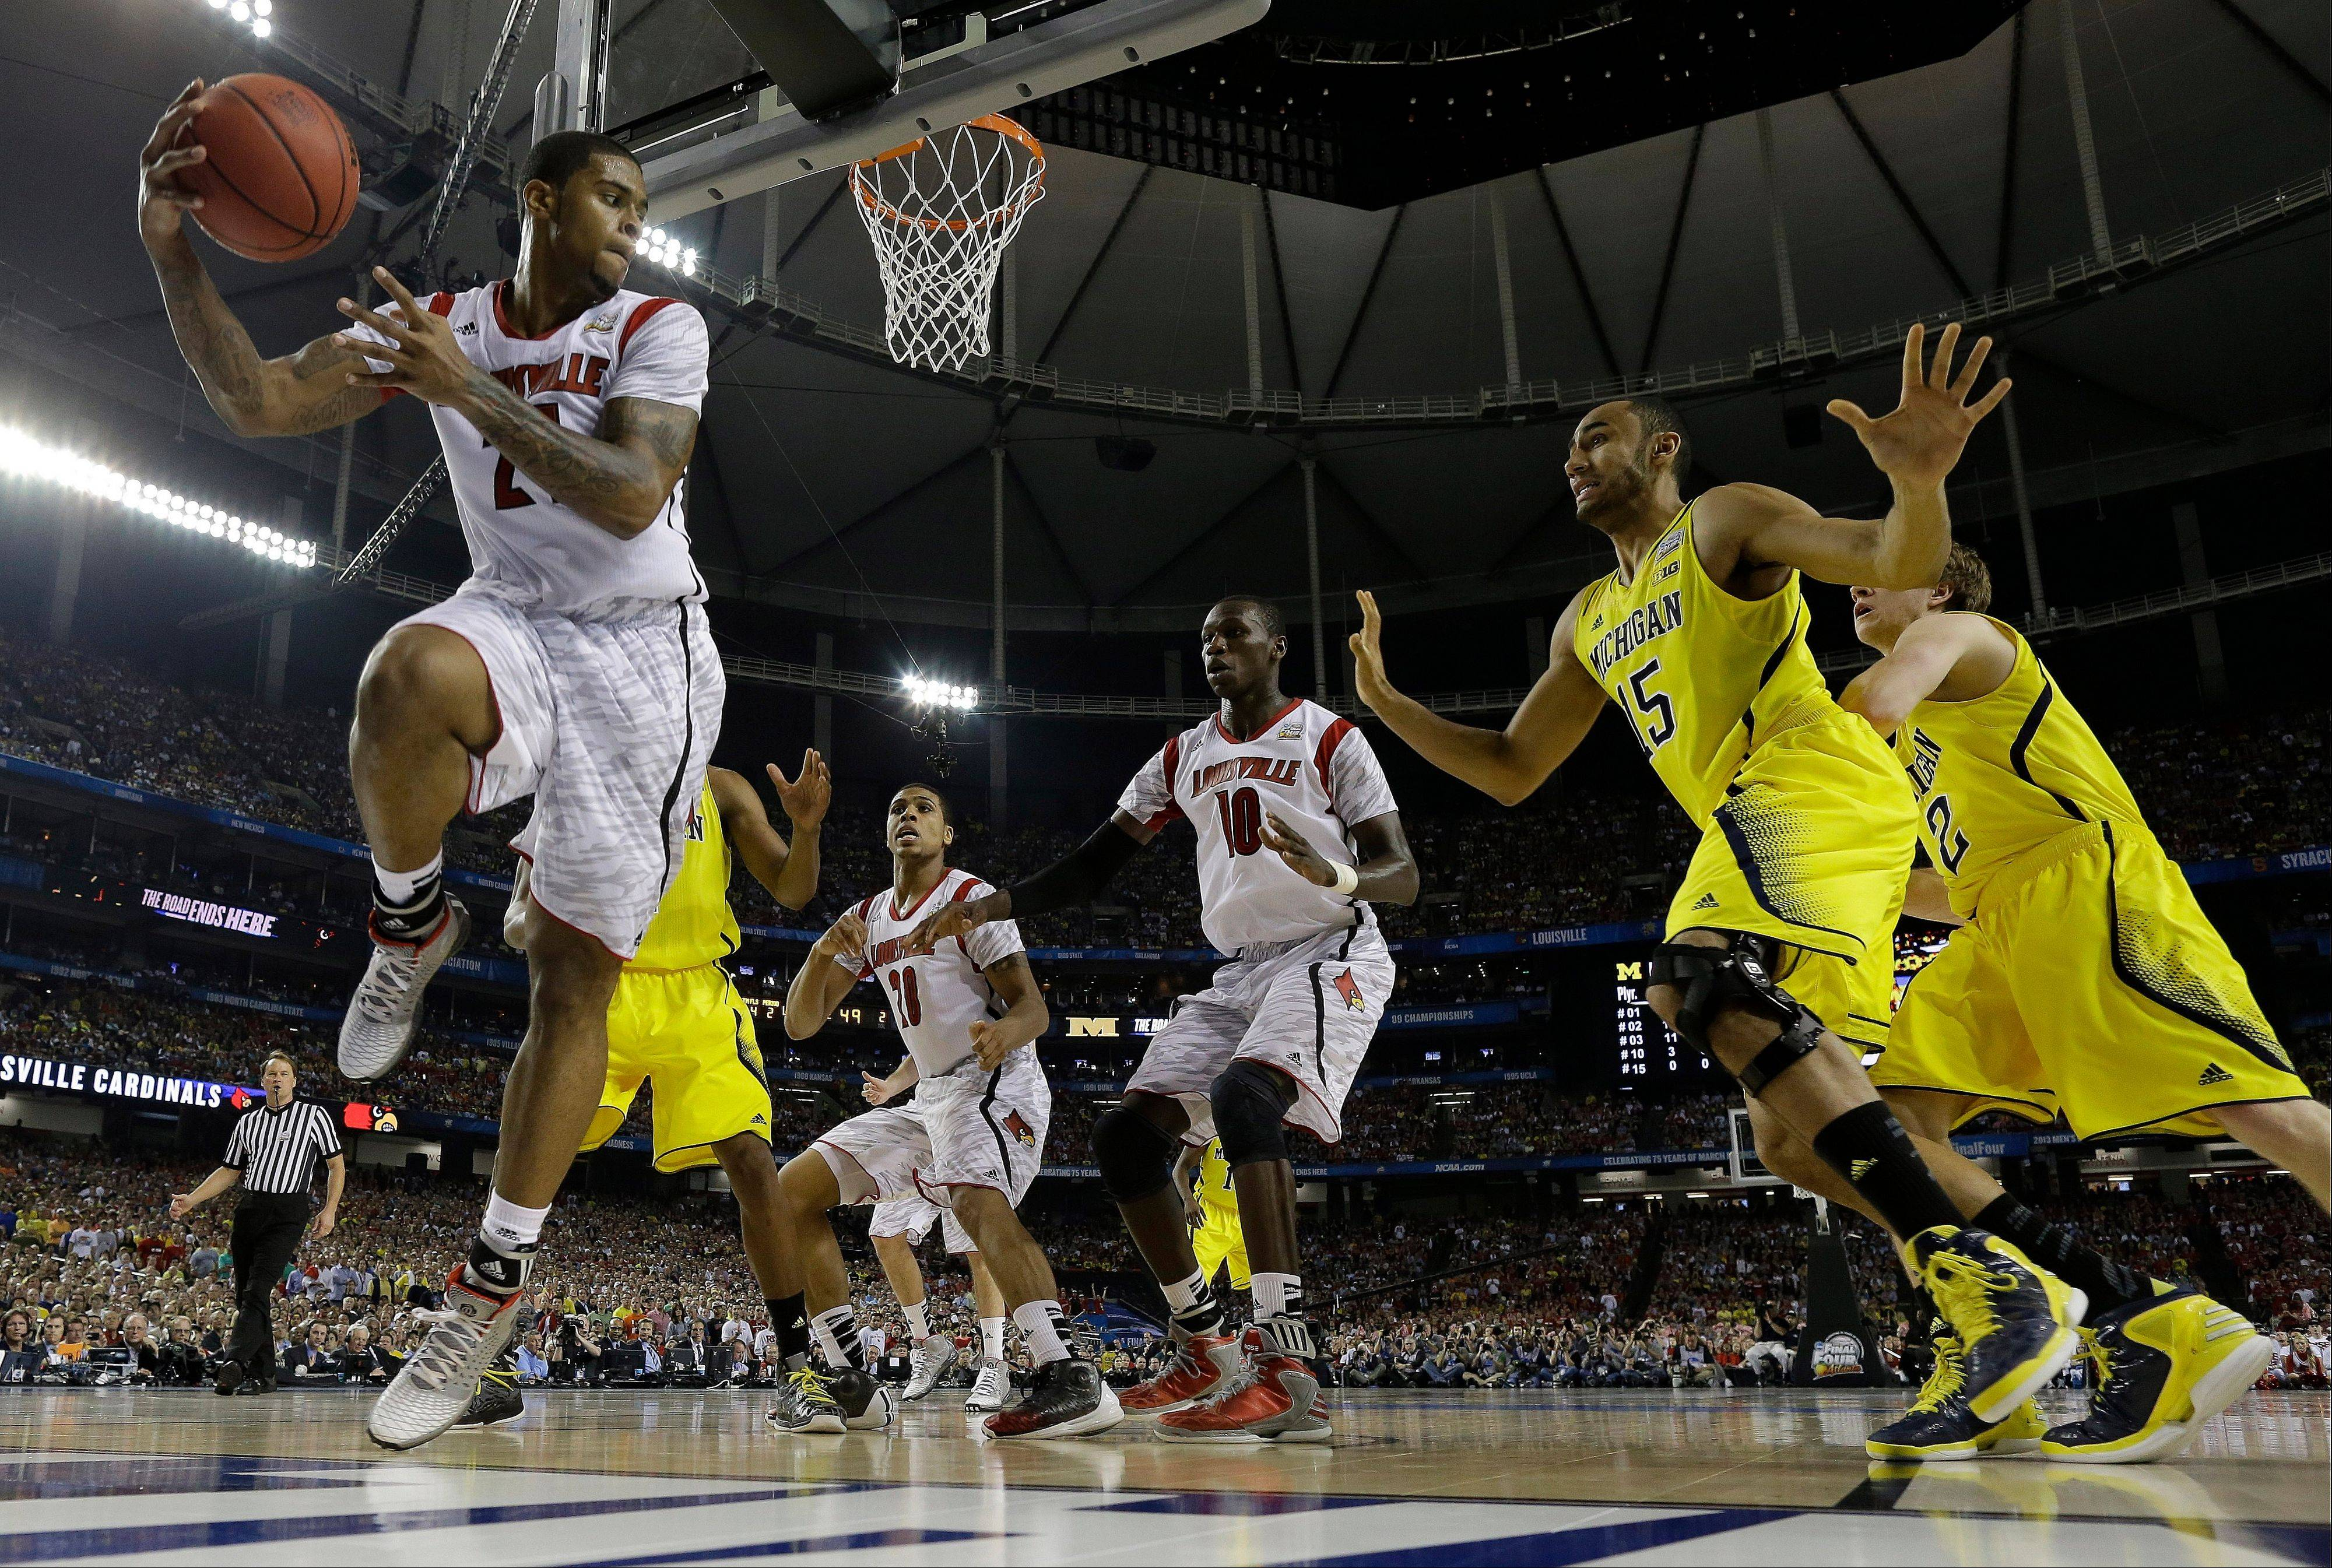 Louisville forward Chane Behanan (21) grabs a rebound as Michigan forward Jon Horford (15) looks on during the second half of the NCAA Final Four tournament college basketball championship game Monday, April 8, 2013, in Atlanta.